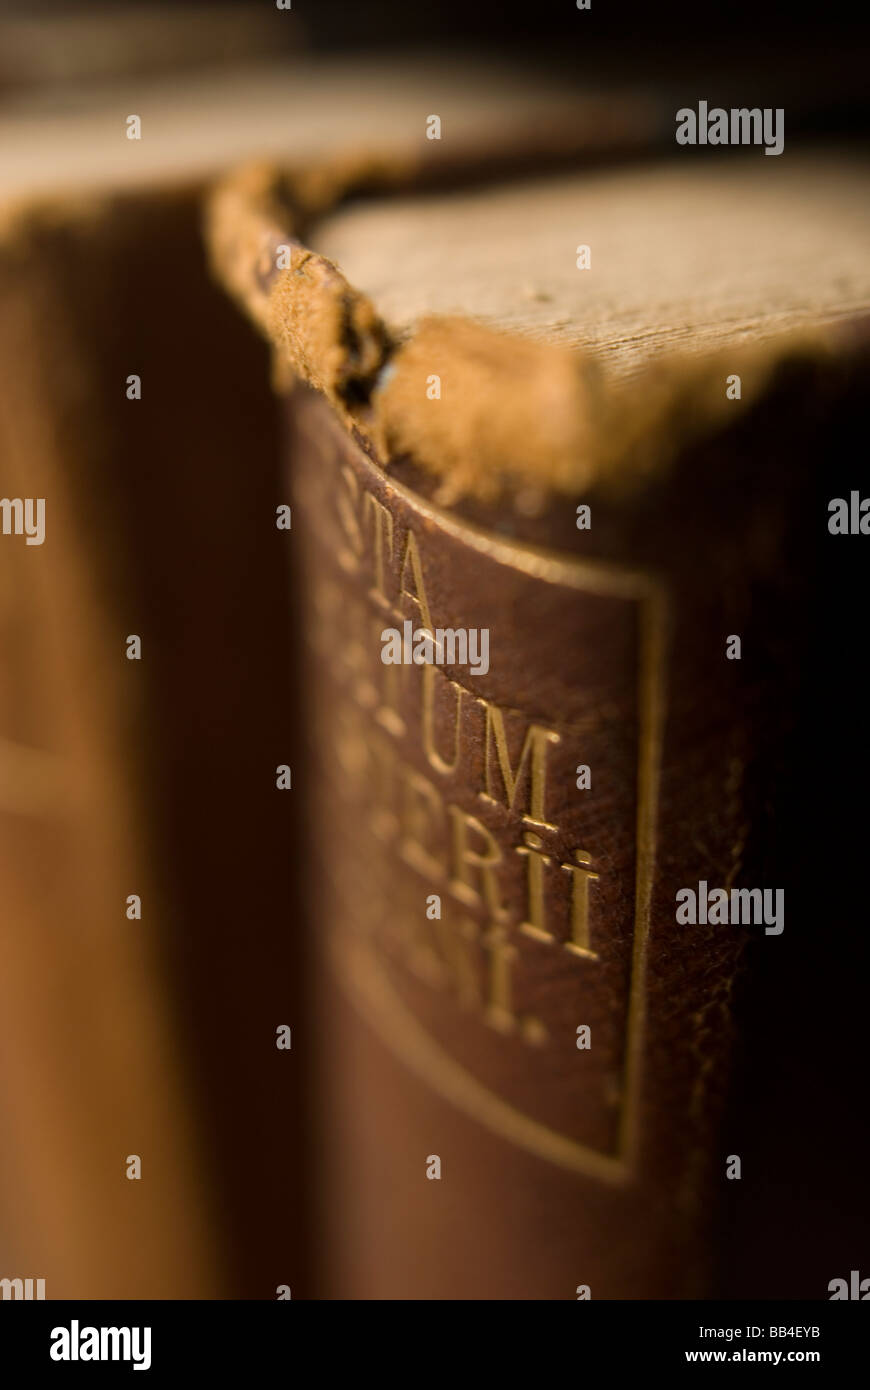 Old books on a library shelf at Bowdoin College in Brunswick, Maine.   ( selective focus ) - Stock Image